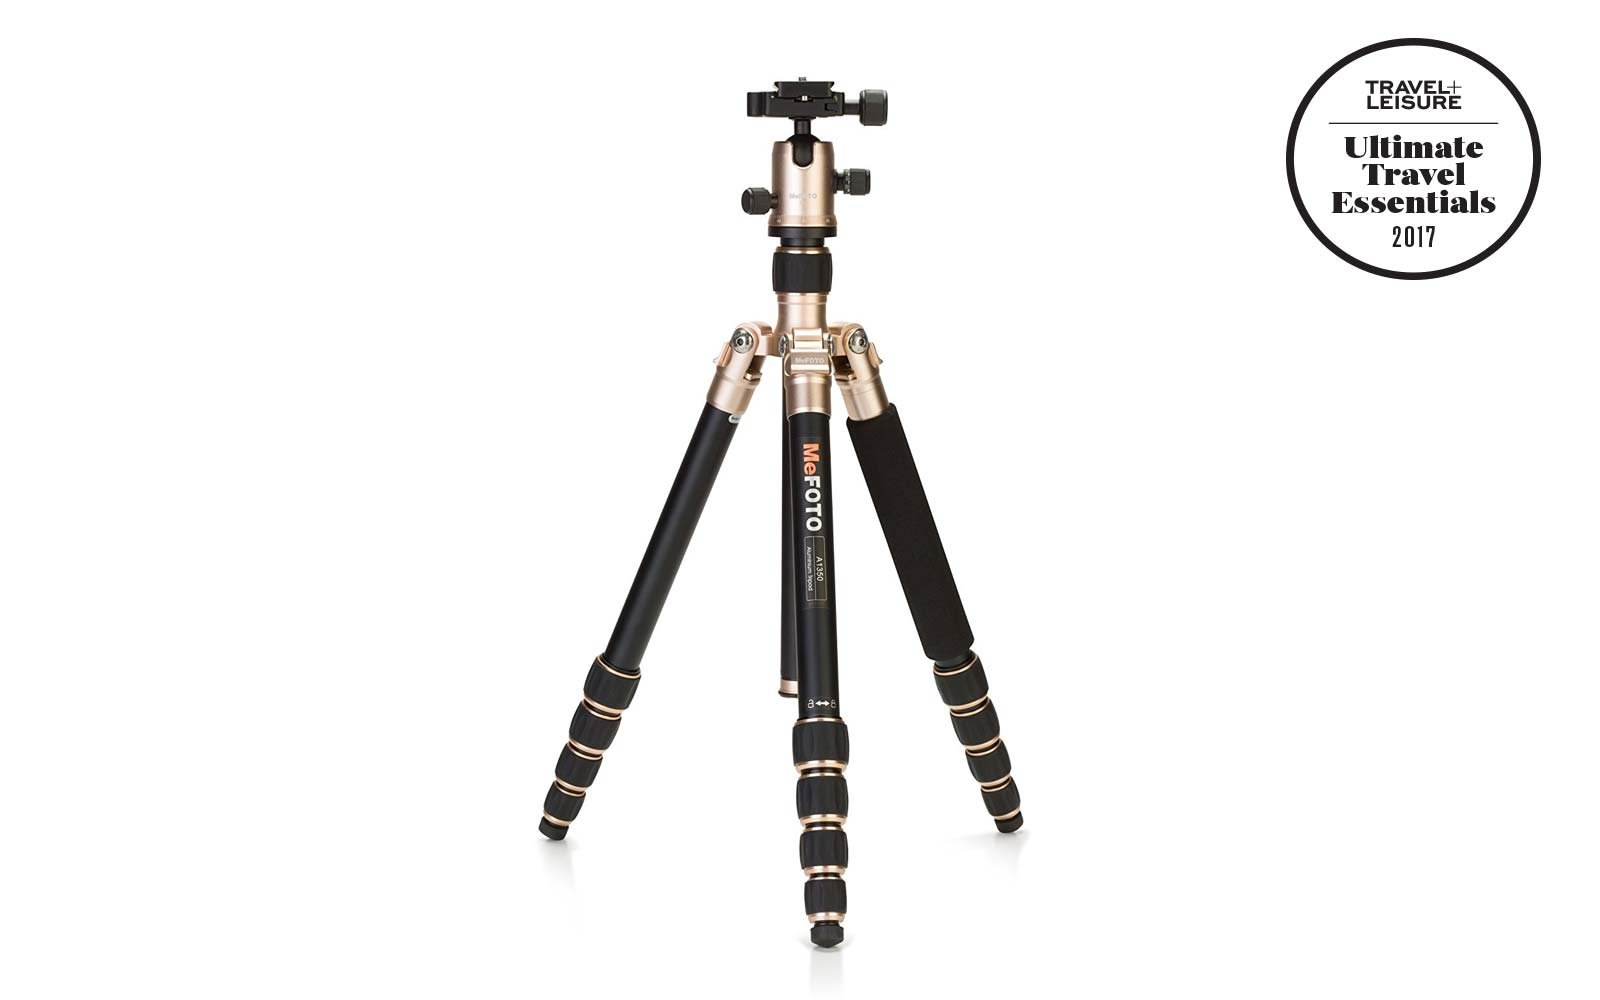 MeFOTO Classic Aluminum Roadtrip Travel Tripod